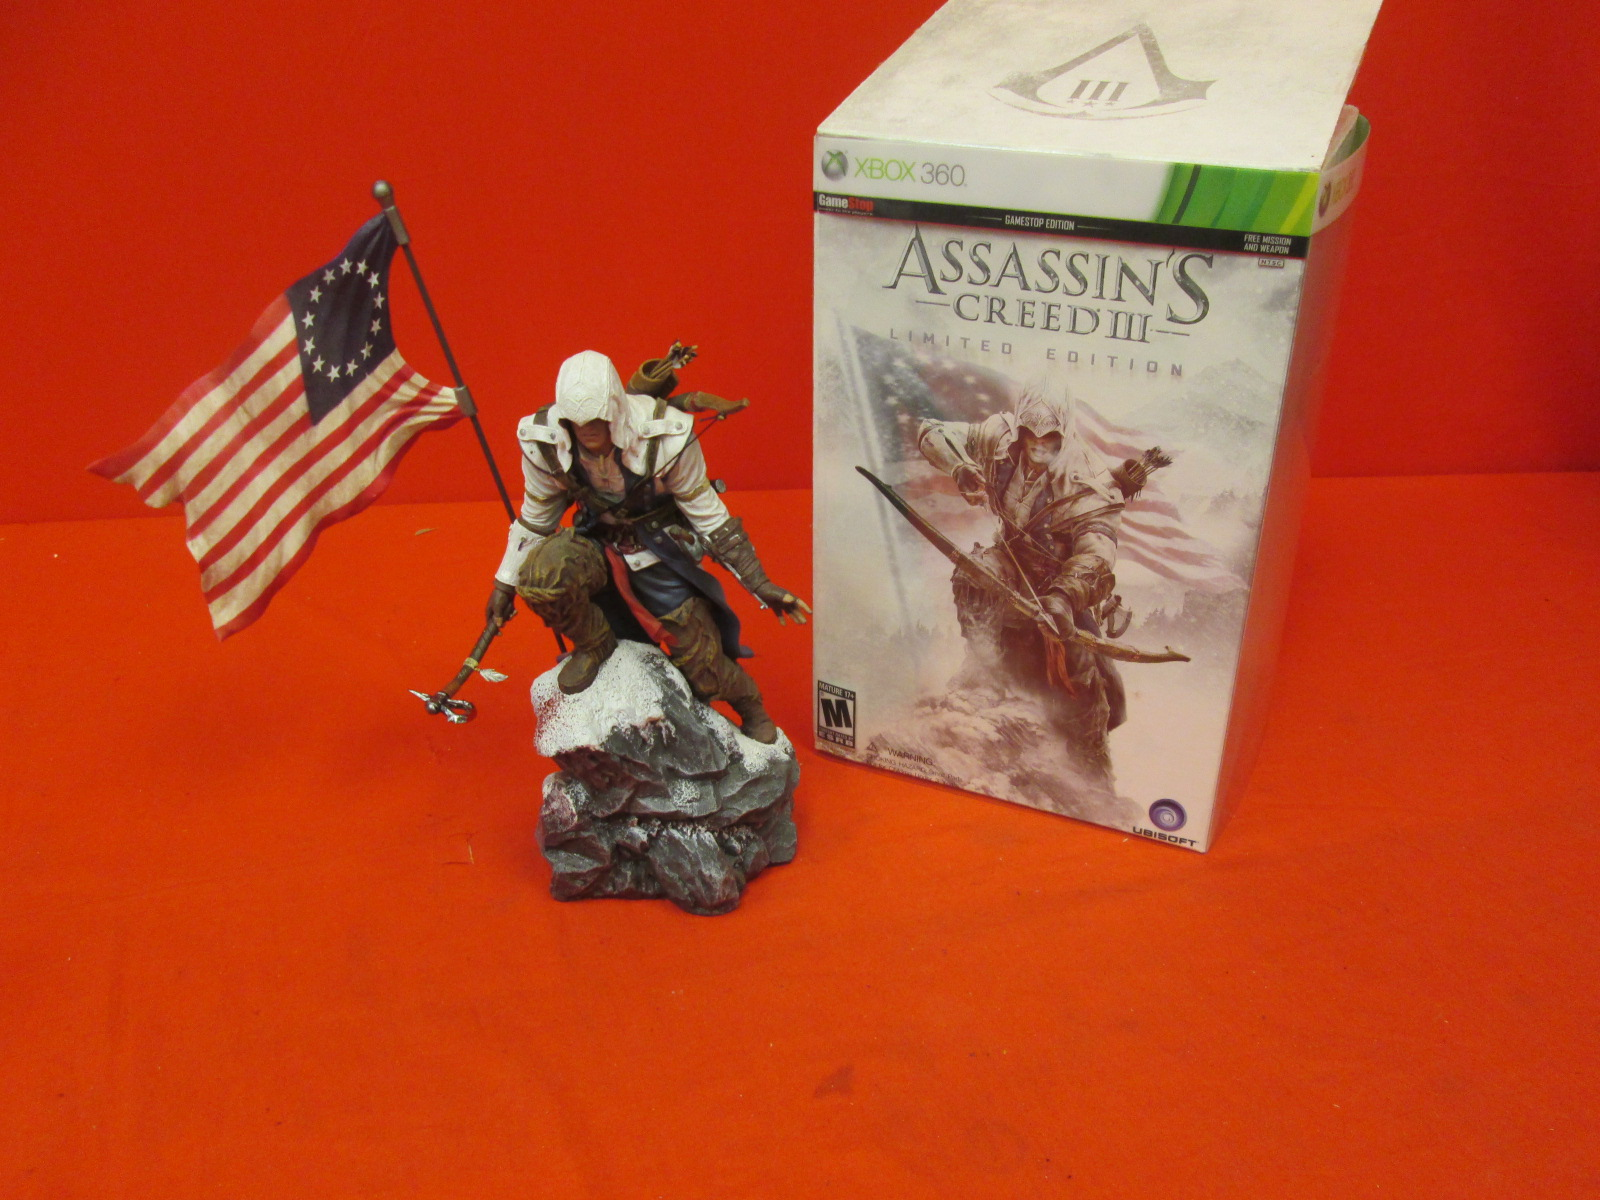 Assassin's Creed III Limited Edition Figurine Only.